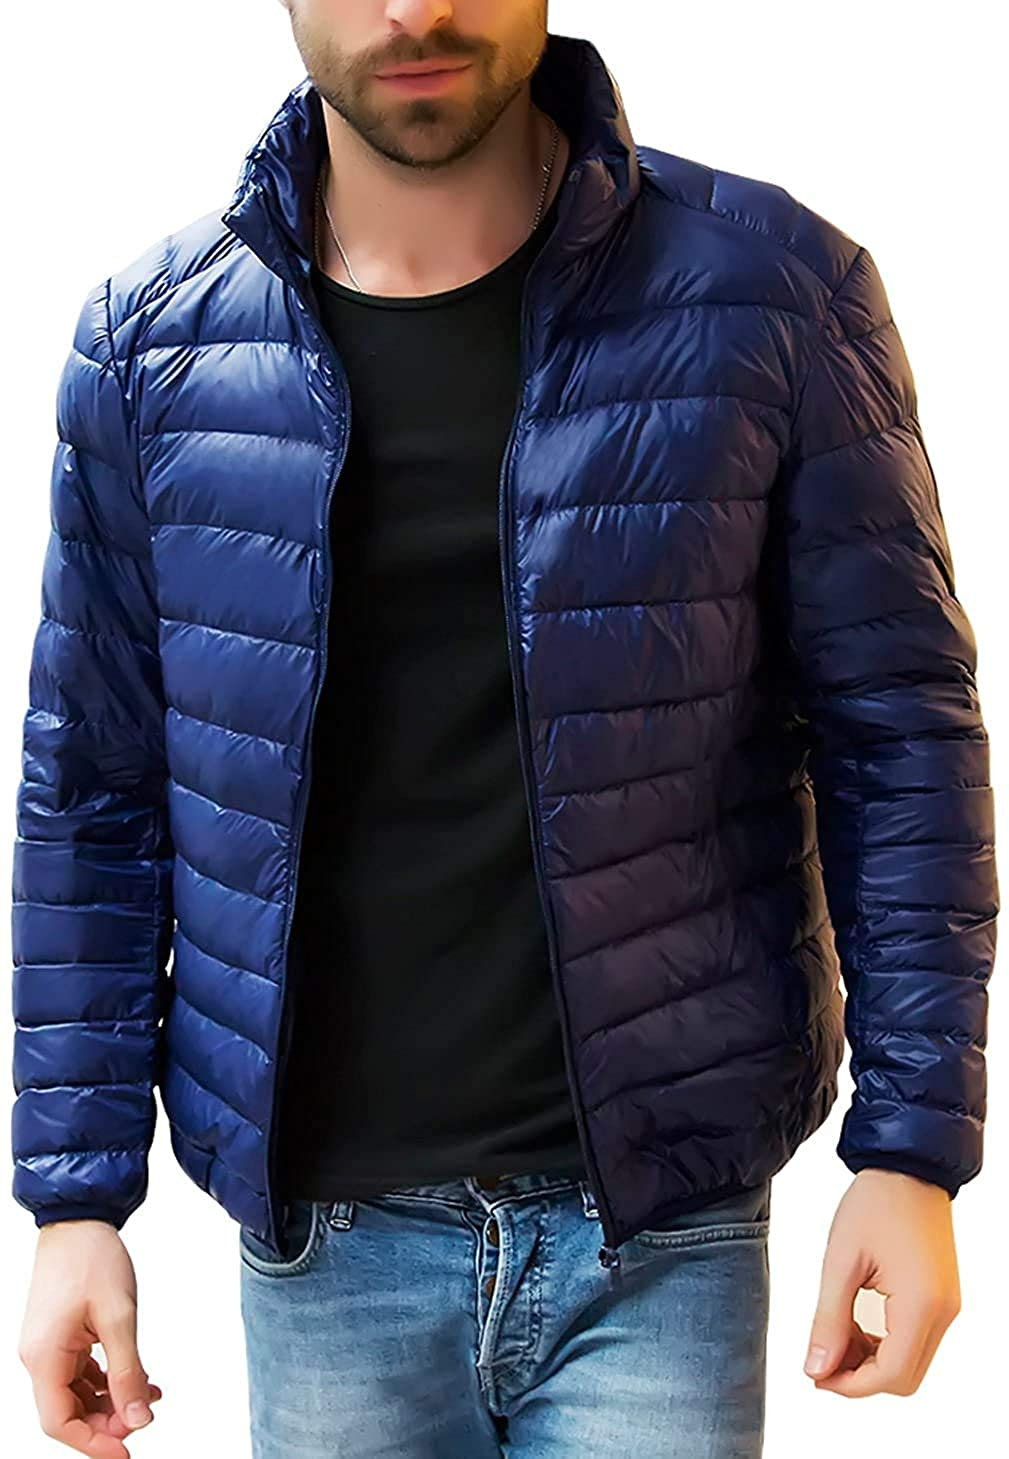 Xudcufyhu Mens Casual Full Zipper Packable Ultra Light Weight Puffer Down Jacket